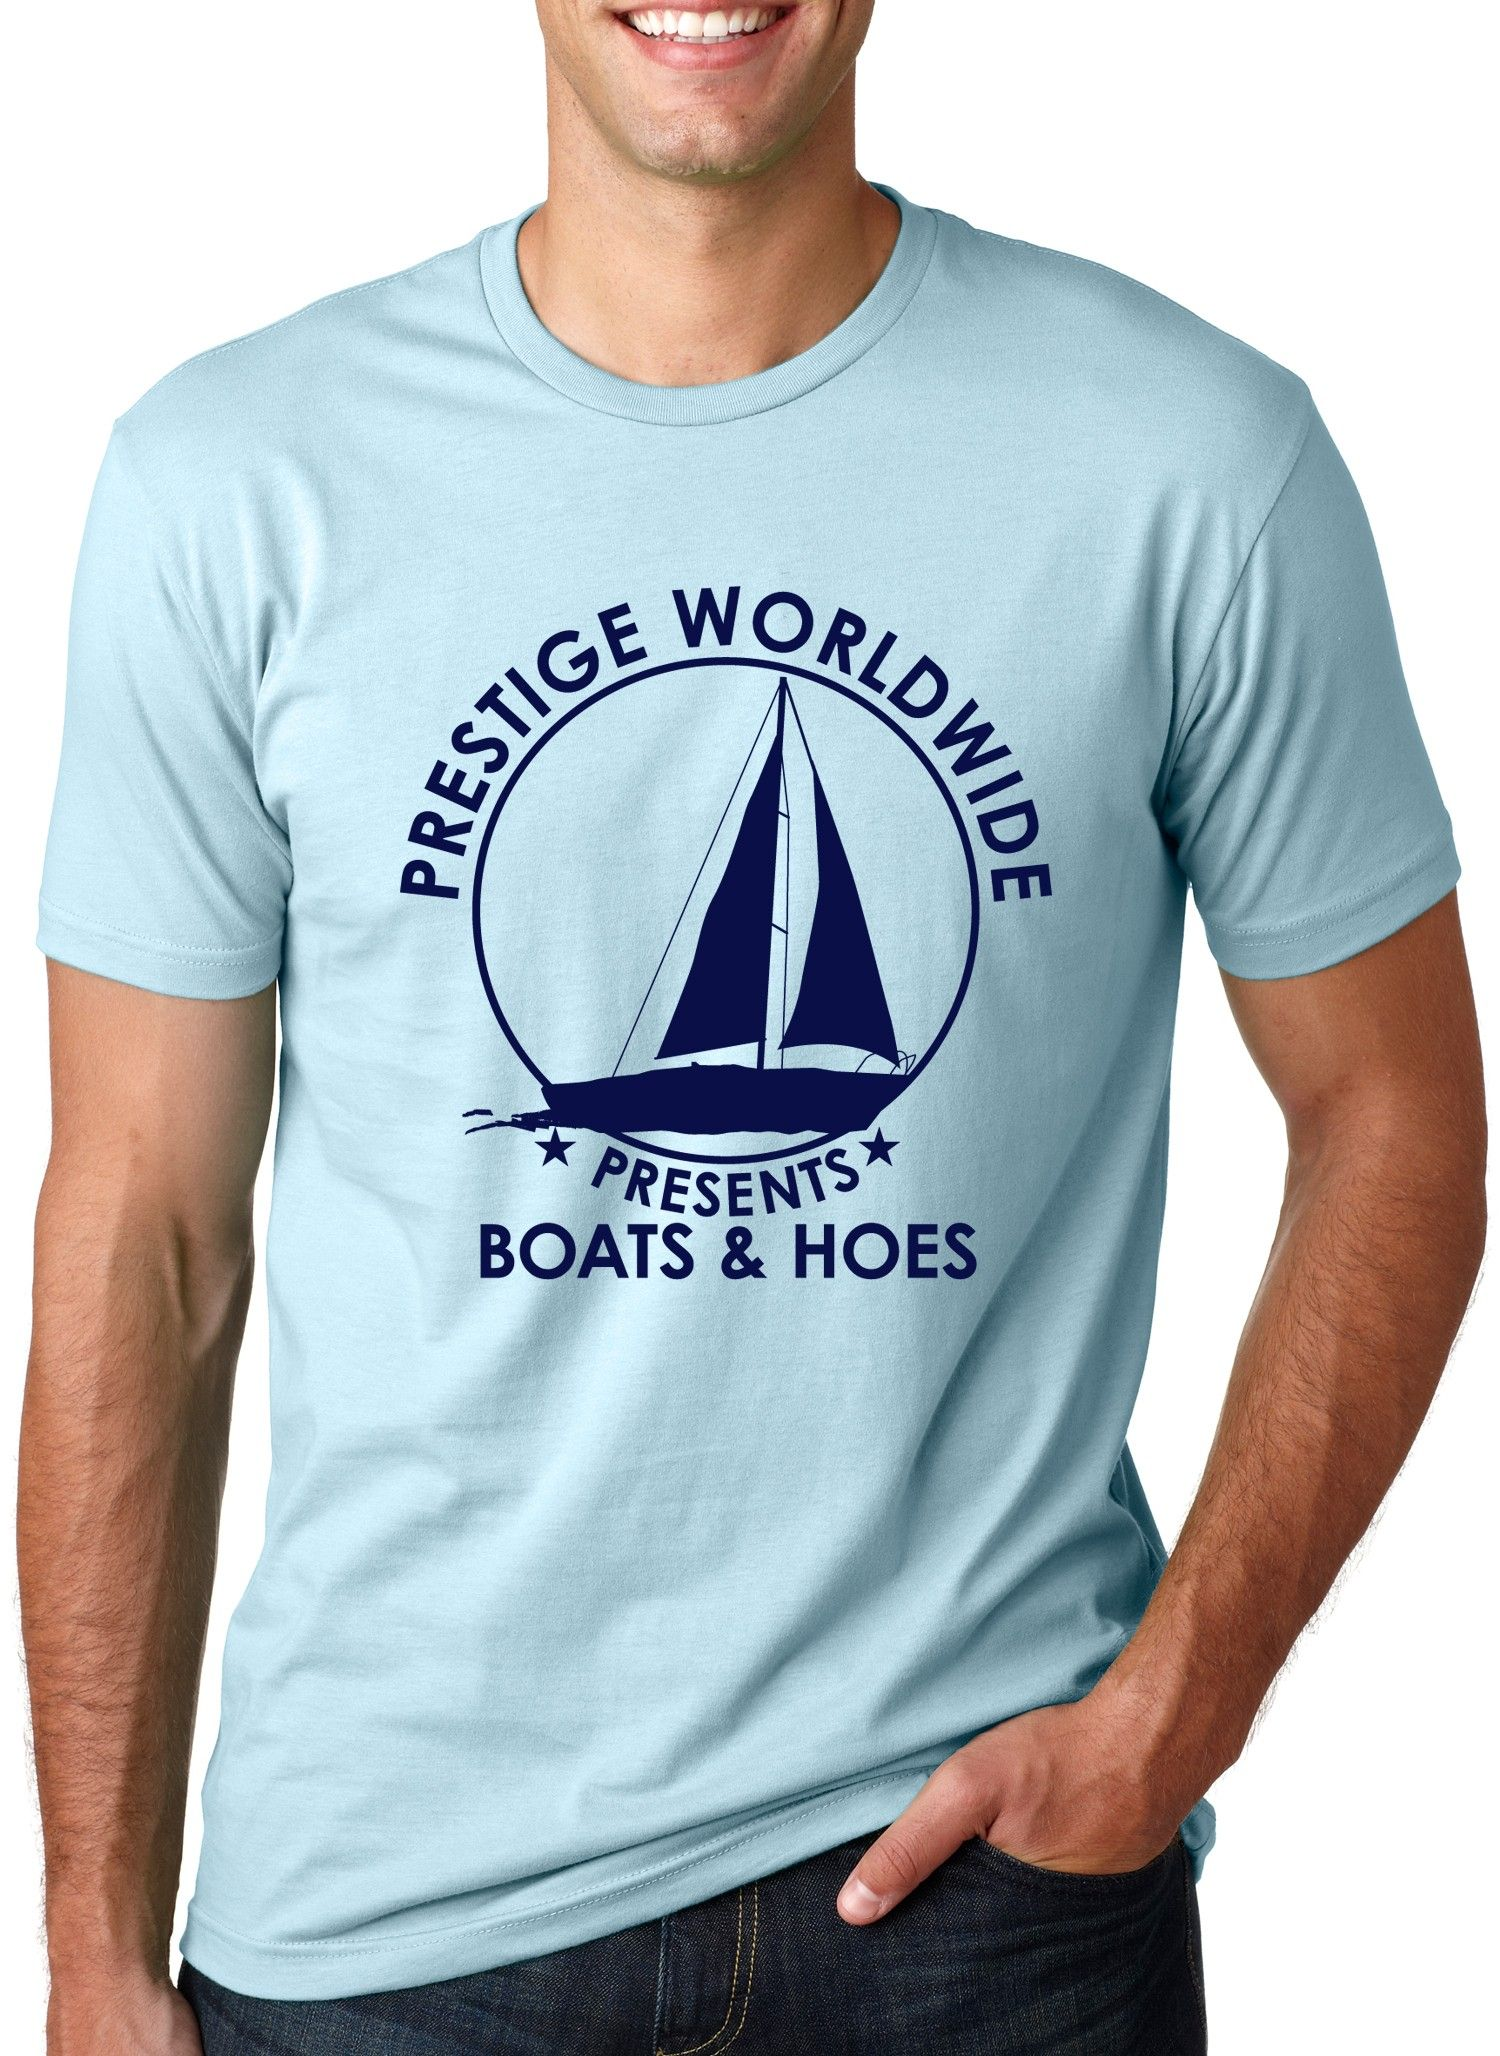 Boats and Hoes Prestige Worldwide Tee T-Shirt. Hilarious Mens Funny